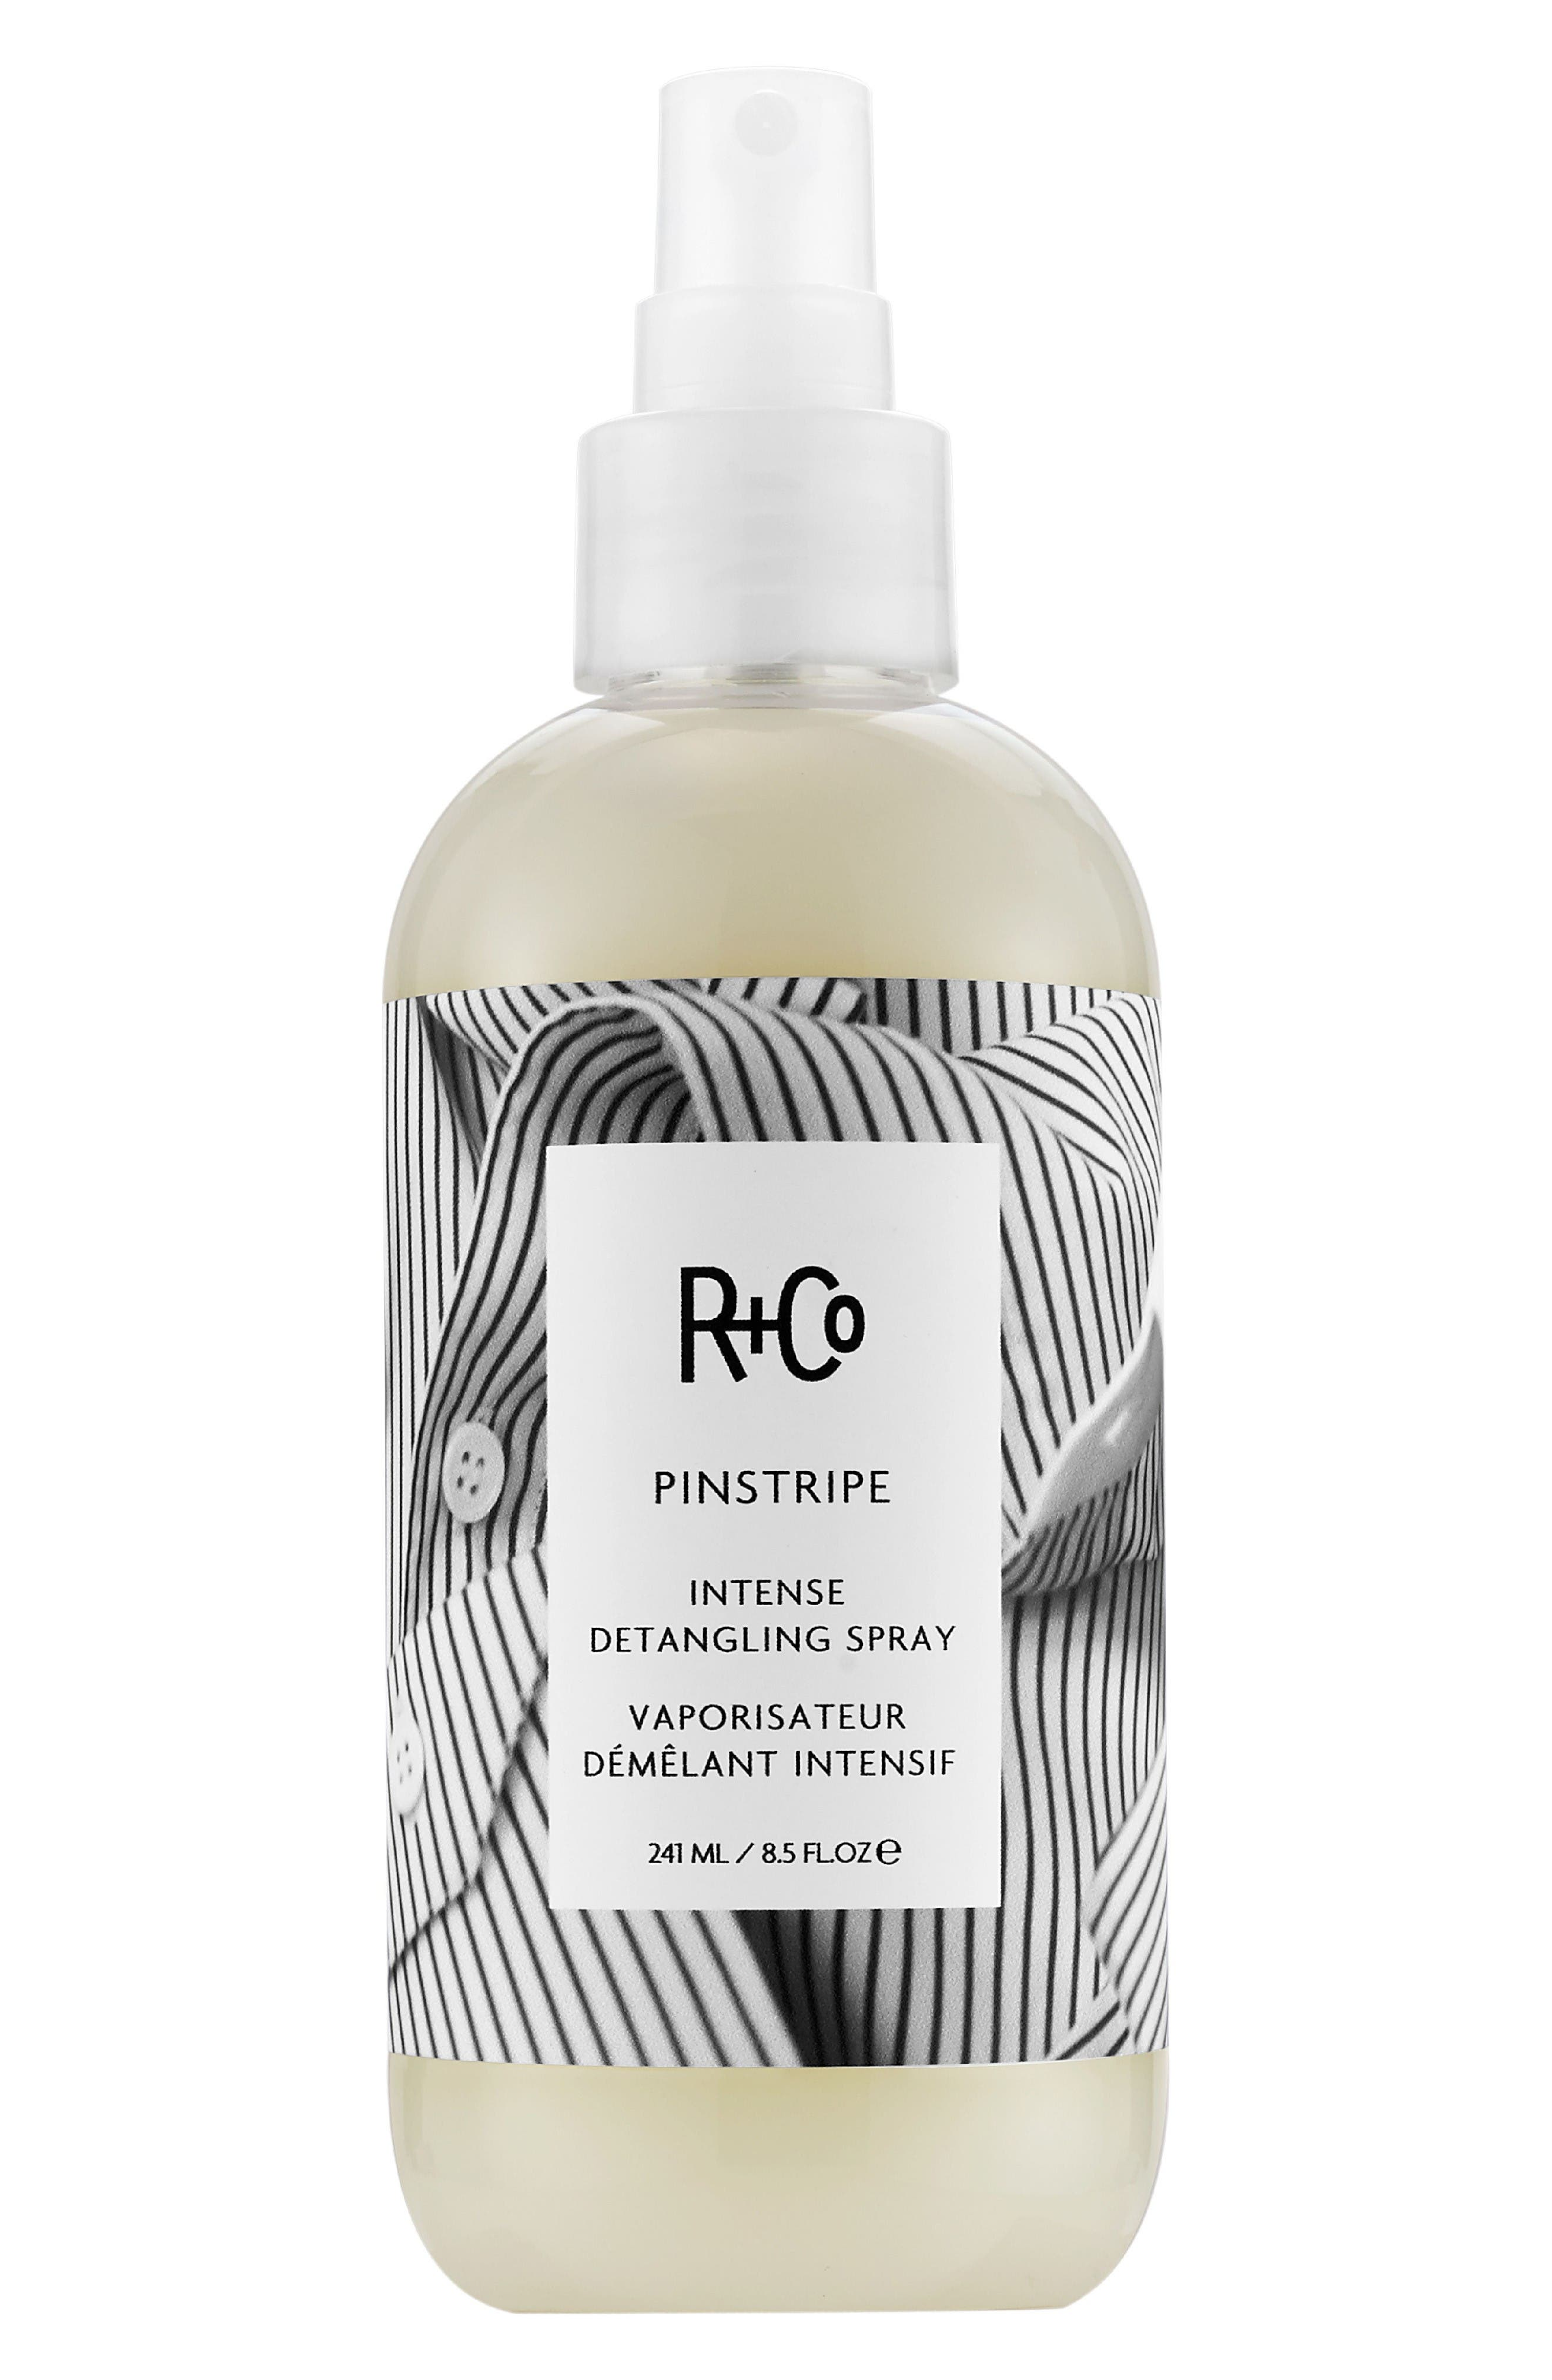 Alternate Image 1 Selected - SPACE.NK.apothecary R+Co Pinstripe Intense Detangling Spray